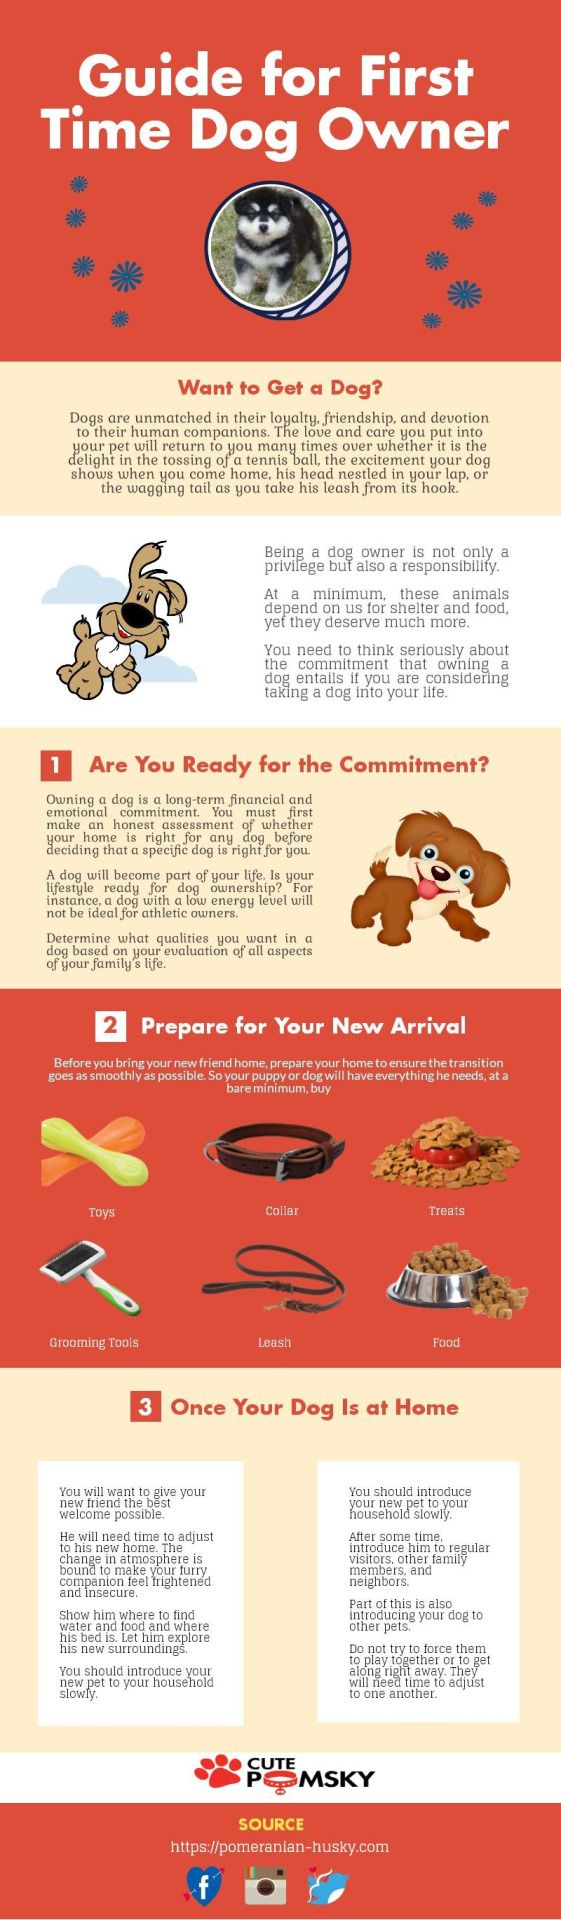 Points to Remember for the first time Dog Owner Thinking about getting your first dog? If so then stop and see this image first. This image will help you a lot in caring for them and you may get more useful information about it.